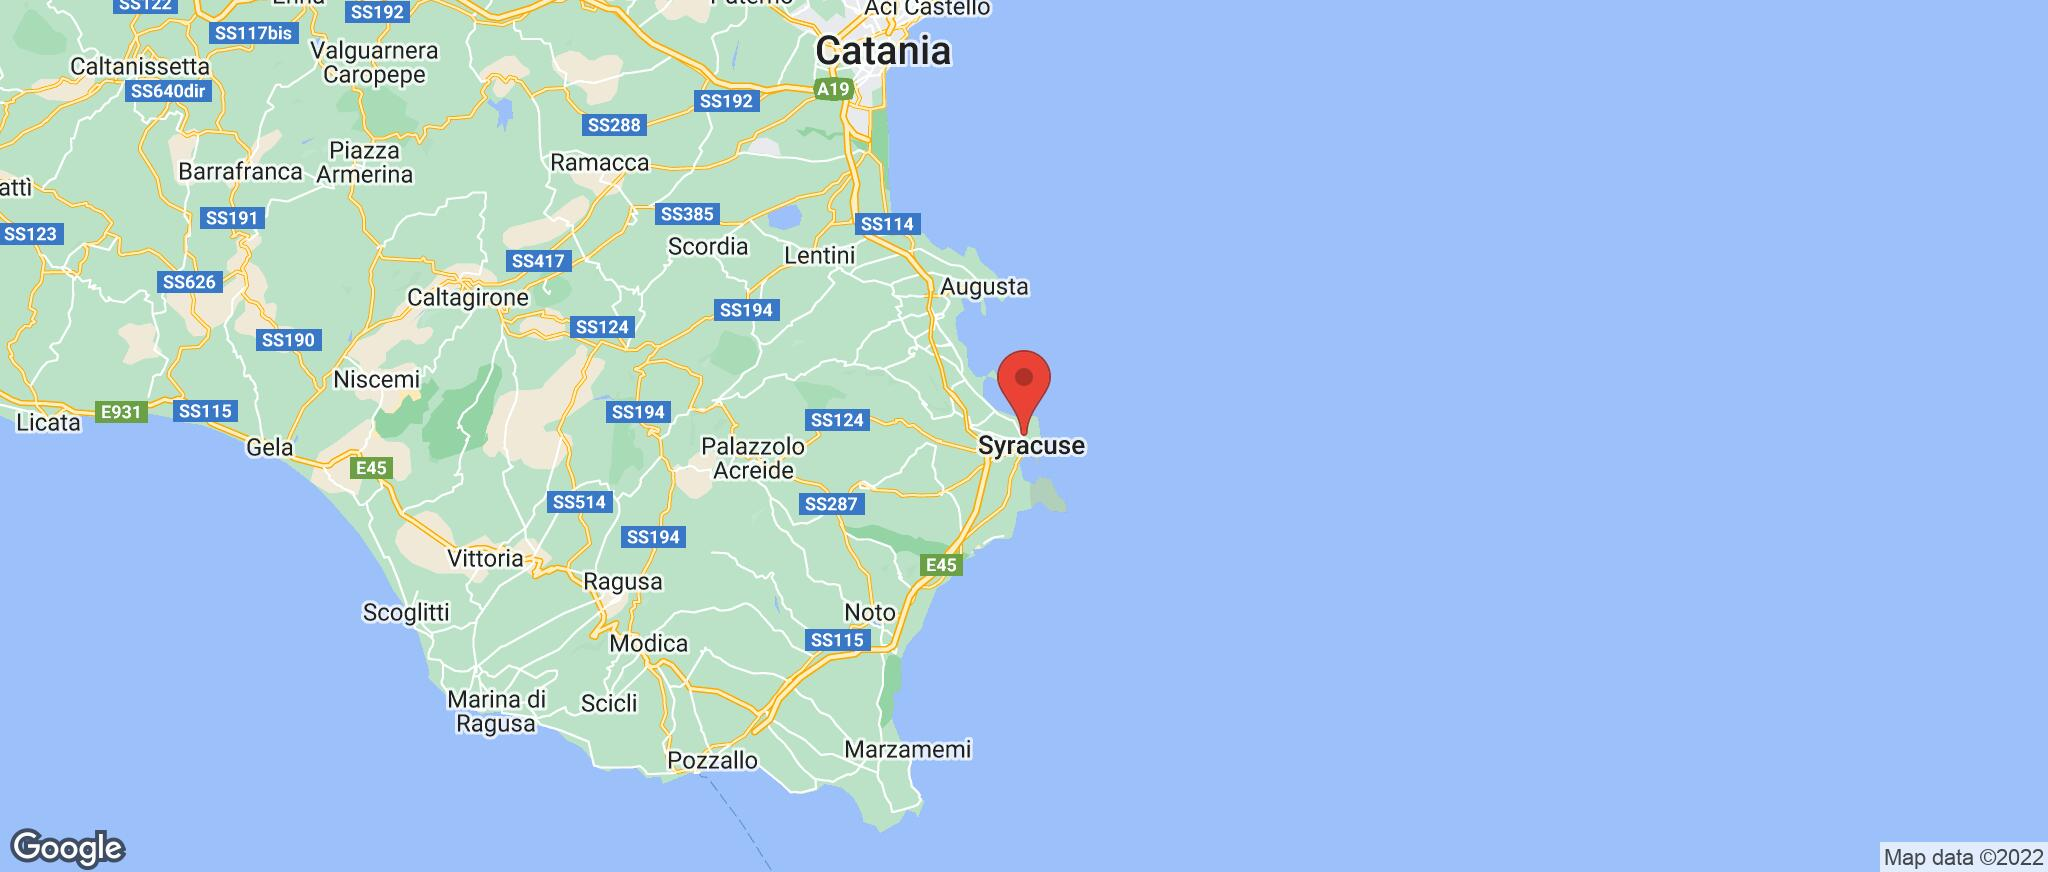 Map showing the location of Siracusa